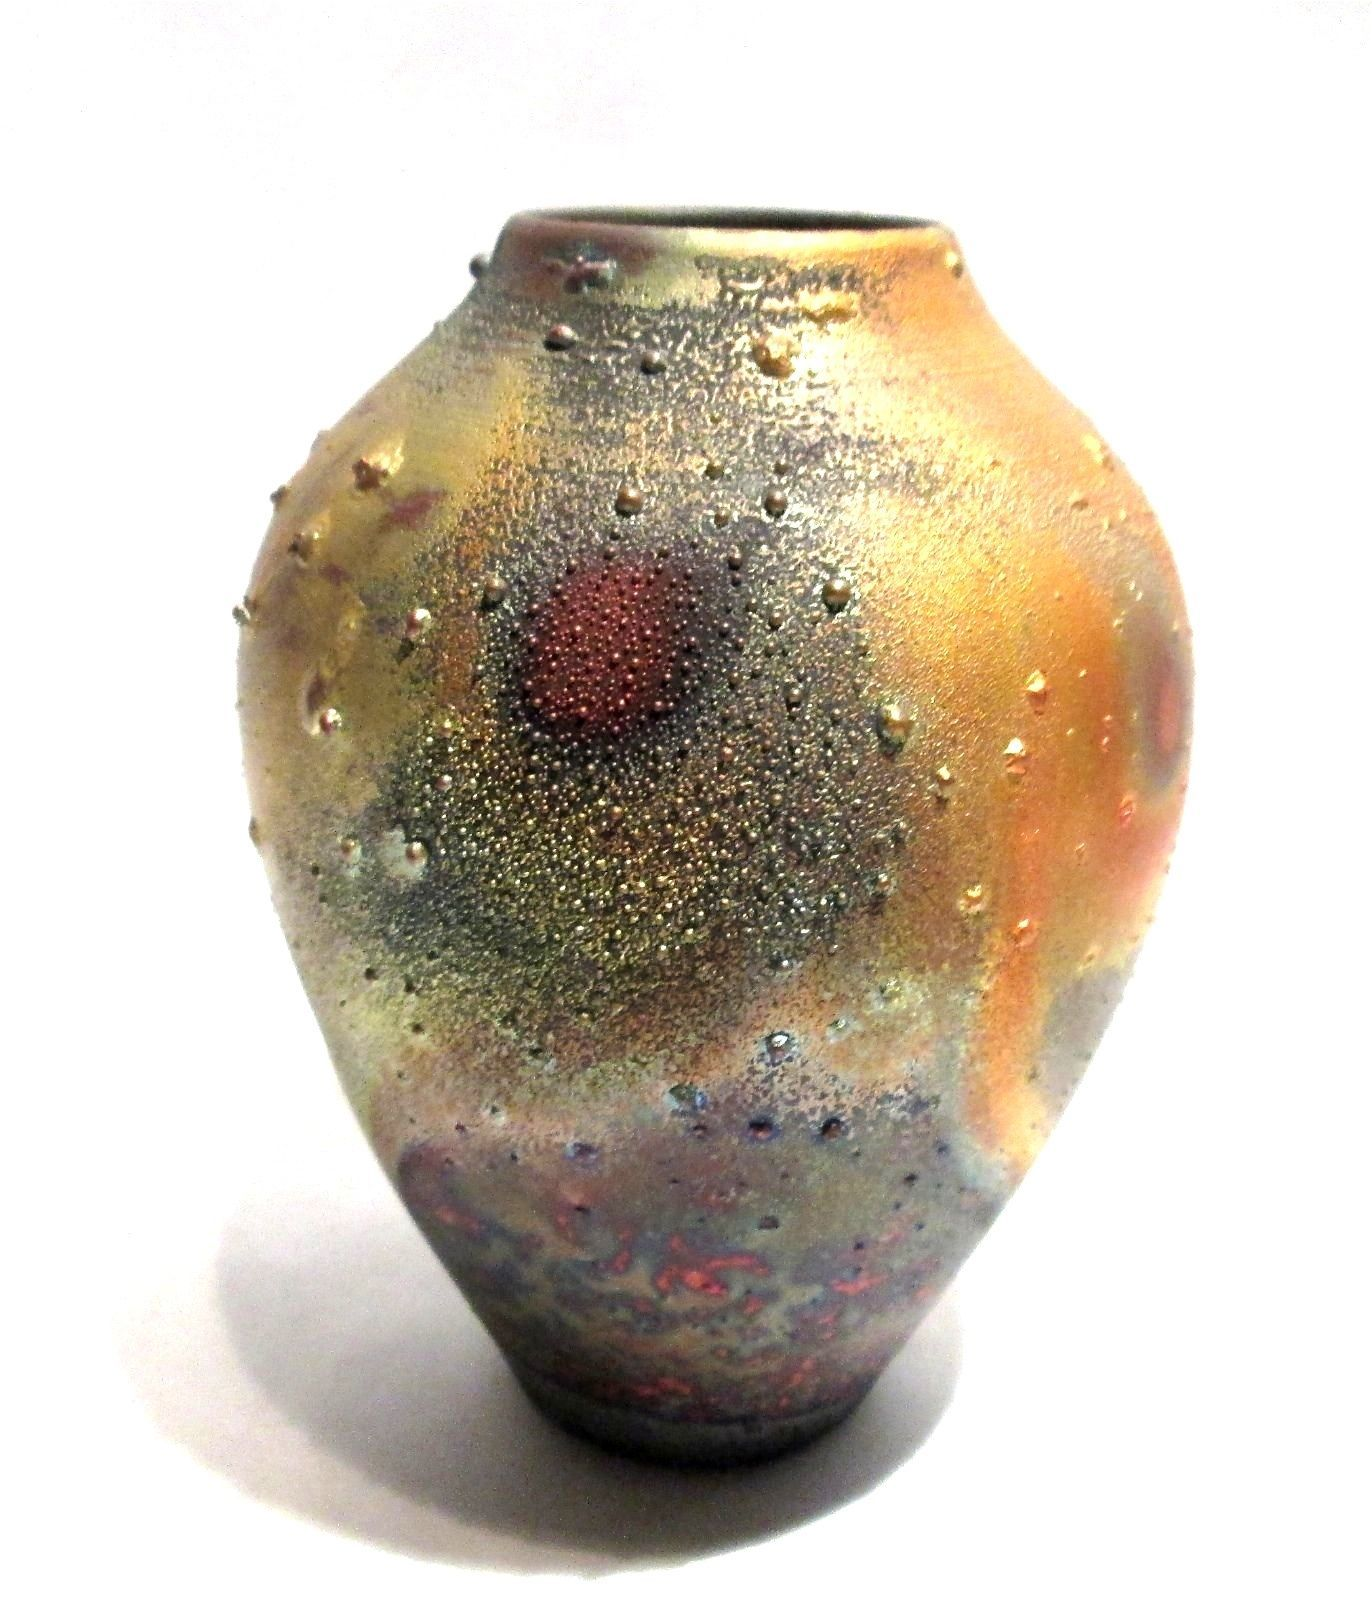 Norman bacon woodstock new york vintage studio art pottery norman bacon woodstock new york vintage studio art pottery textured raku vase reviewsmspy